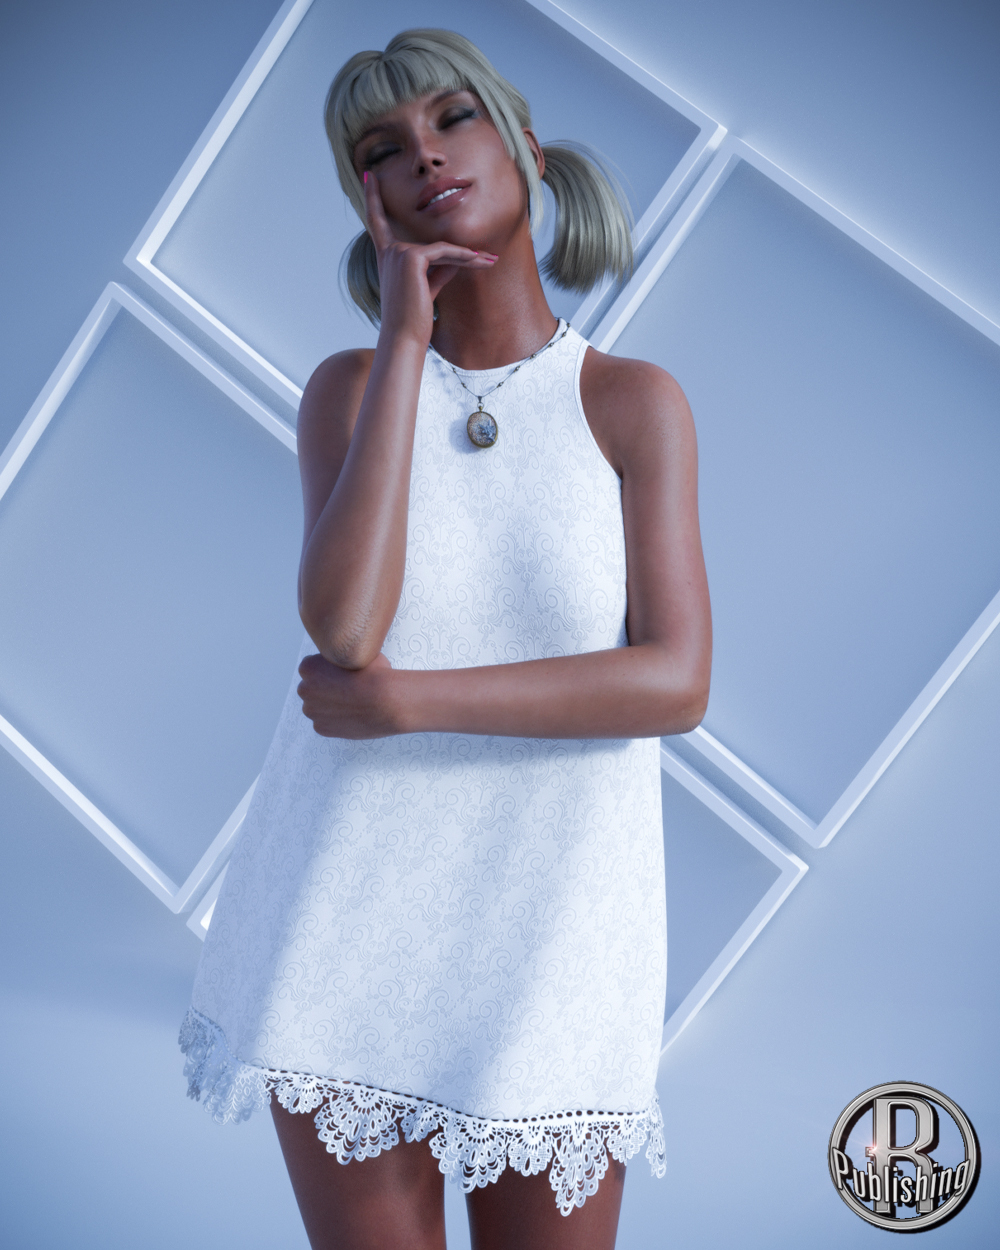 The Little White Dress by RPublishing